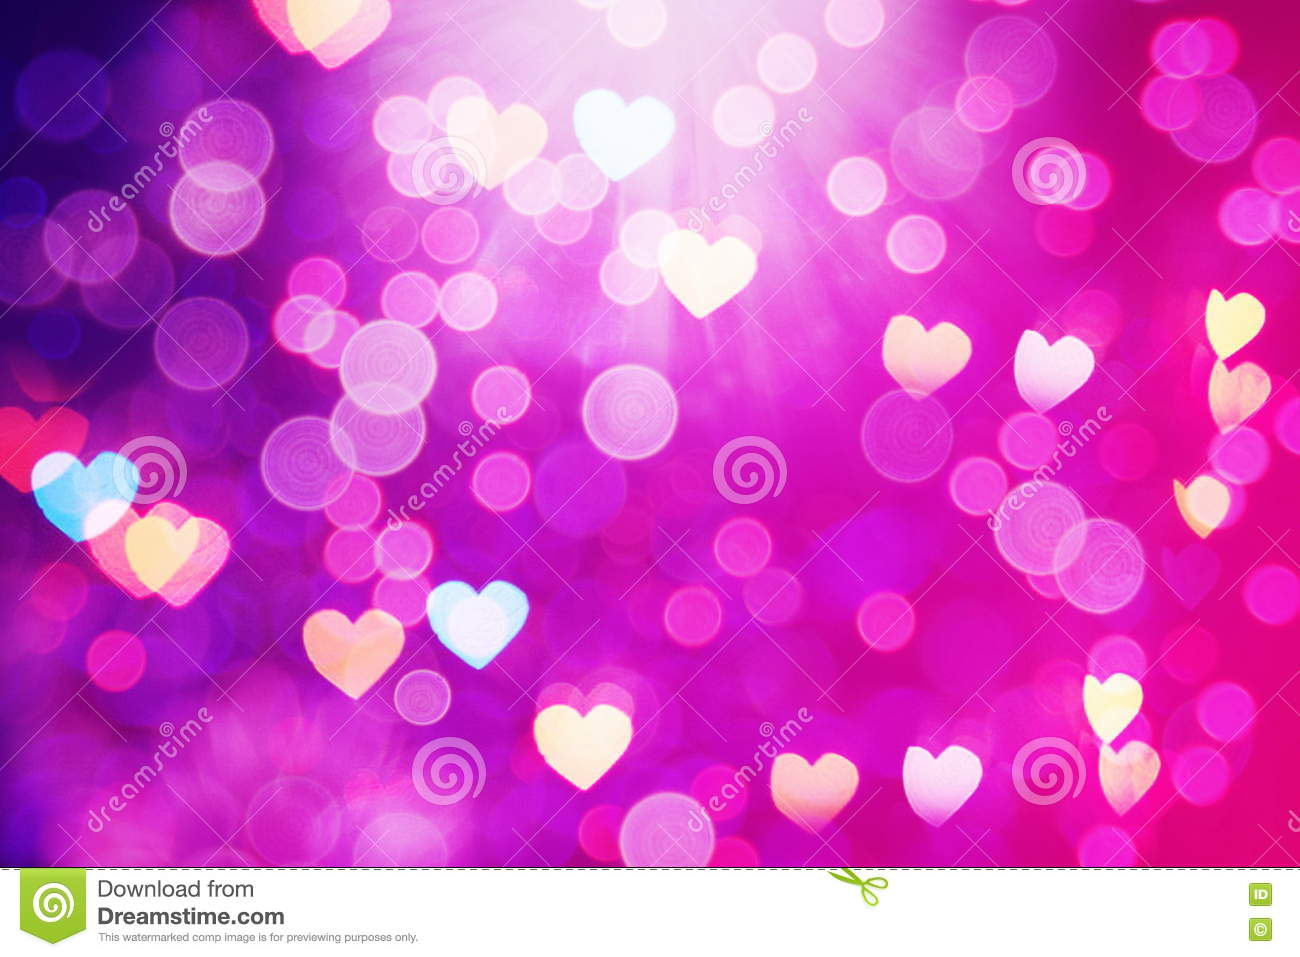 Bokeh Background Pink Purple Hearts, Circles Stock Photo ...